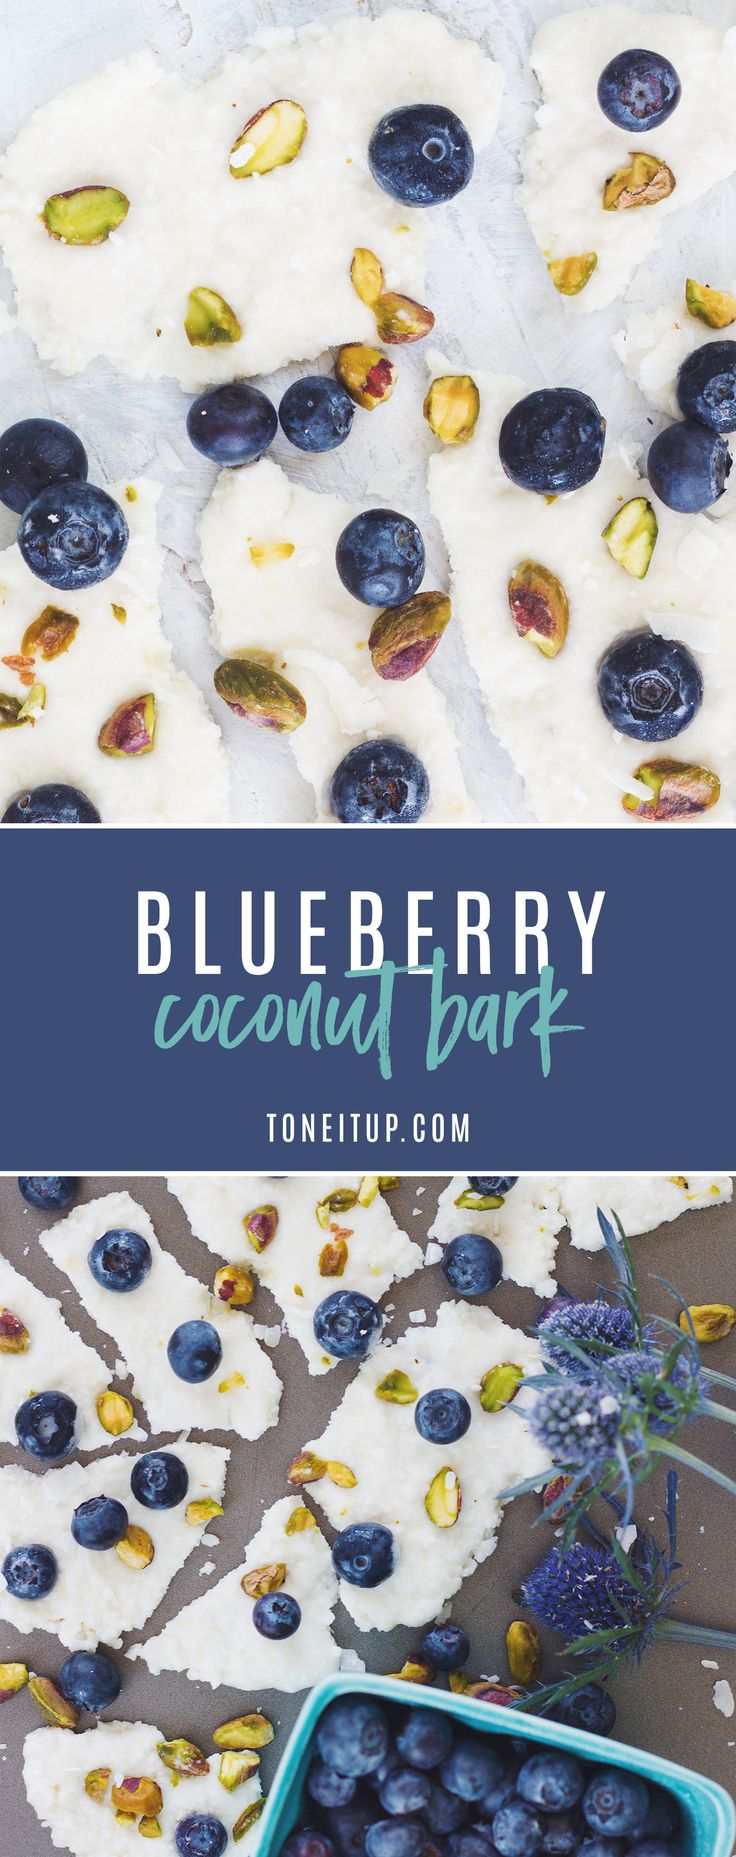 We love this delicious Blueberry Coconut Bark. This recipe only has 4 ingredients and zero added sugar, and will majorly satisfy your sweet tooth. Enjoy!!